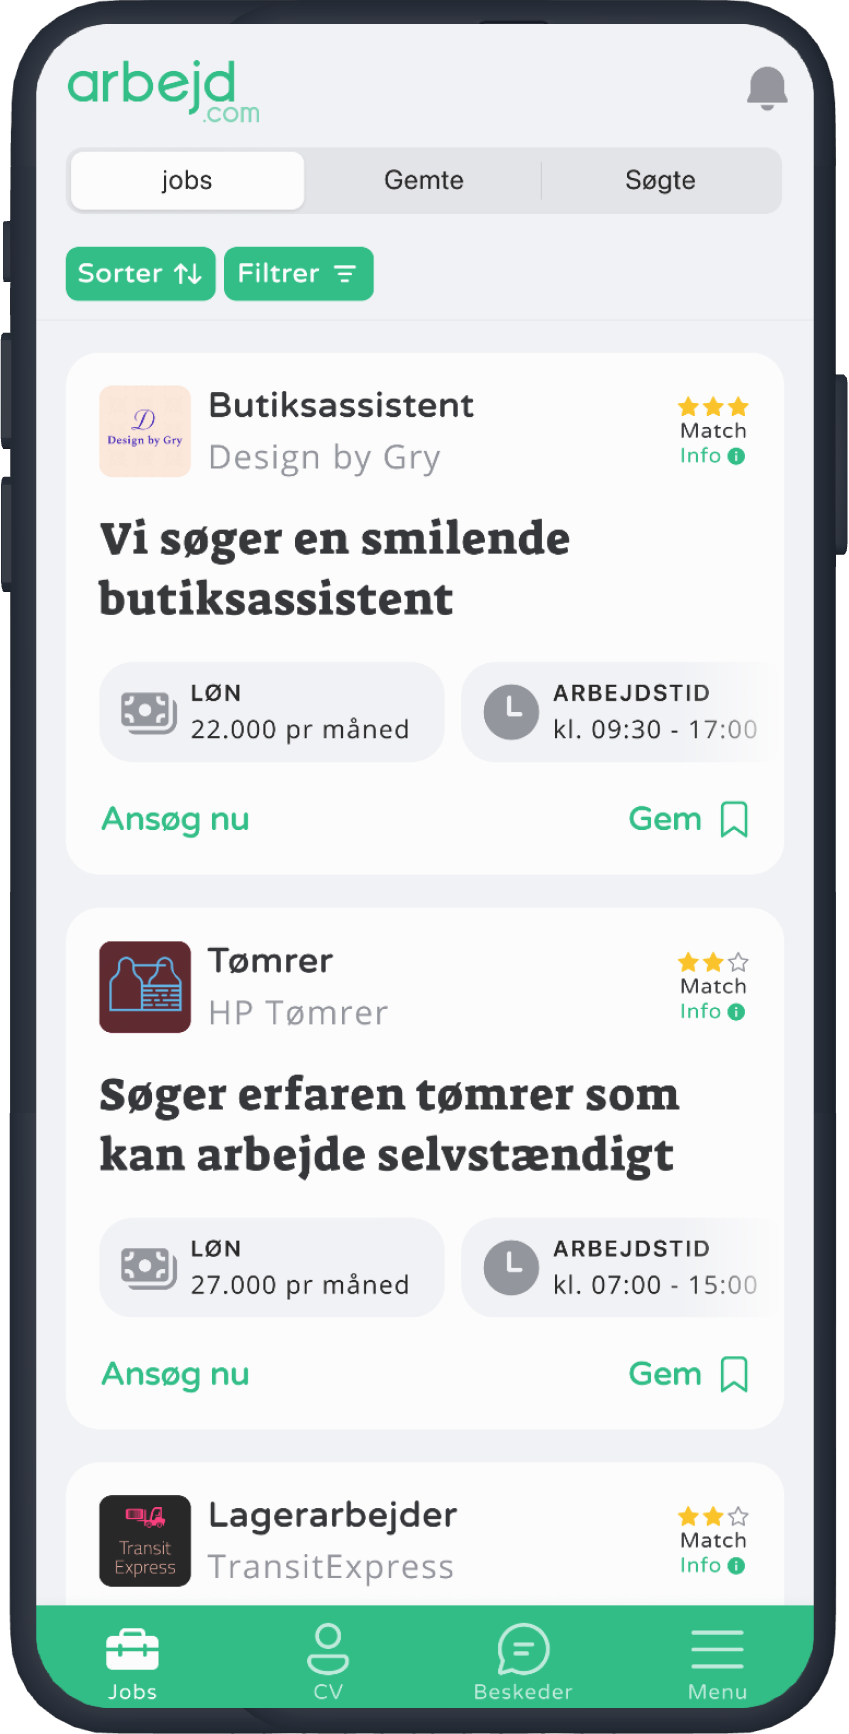 An iPhone showing the Arbejd.com app